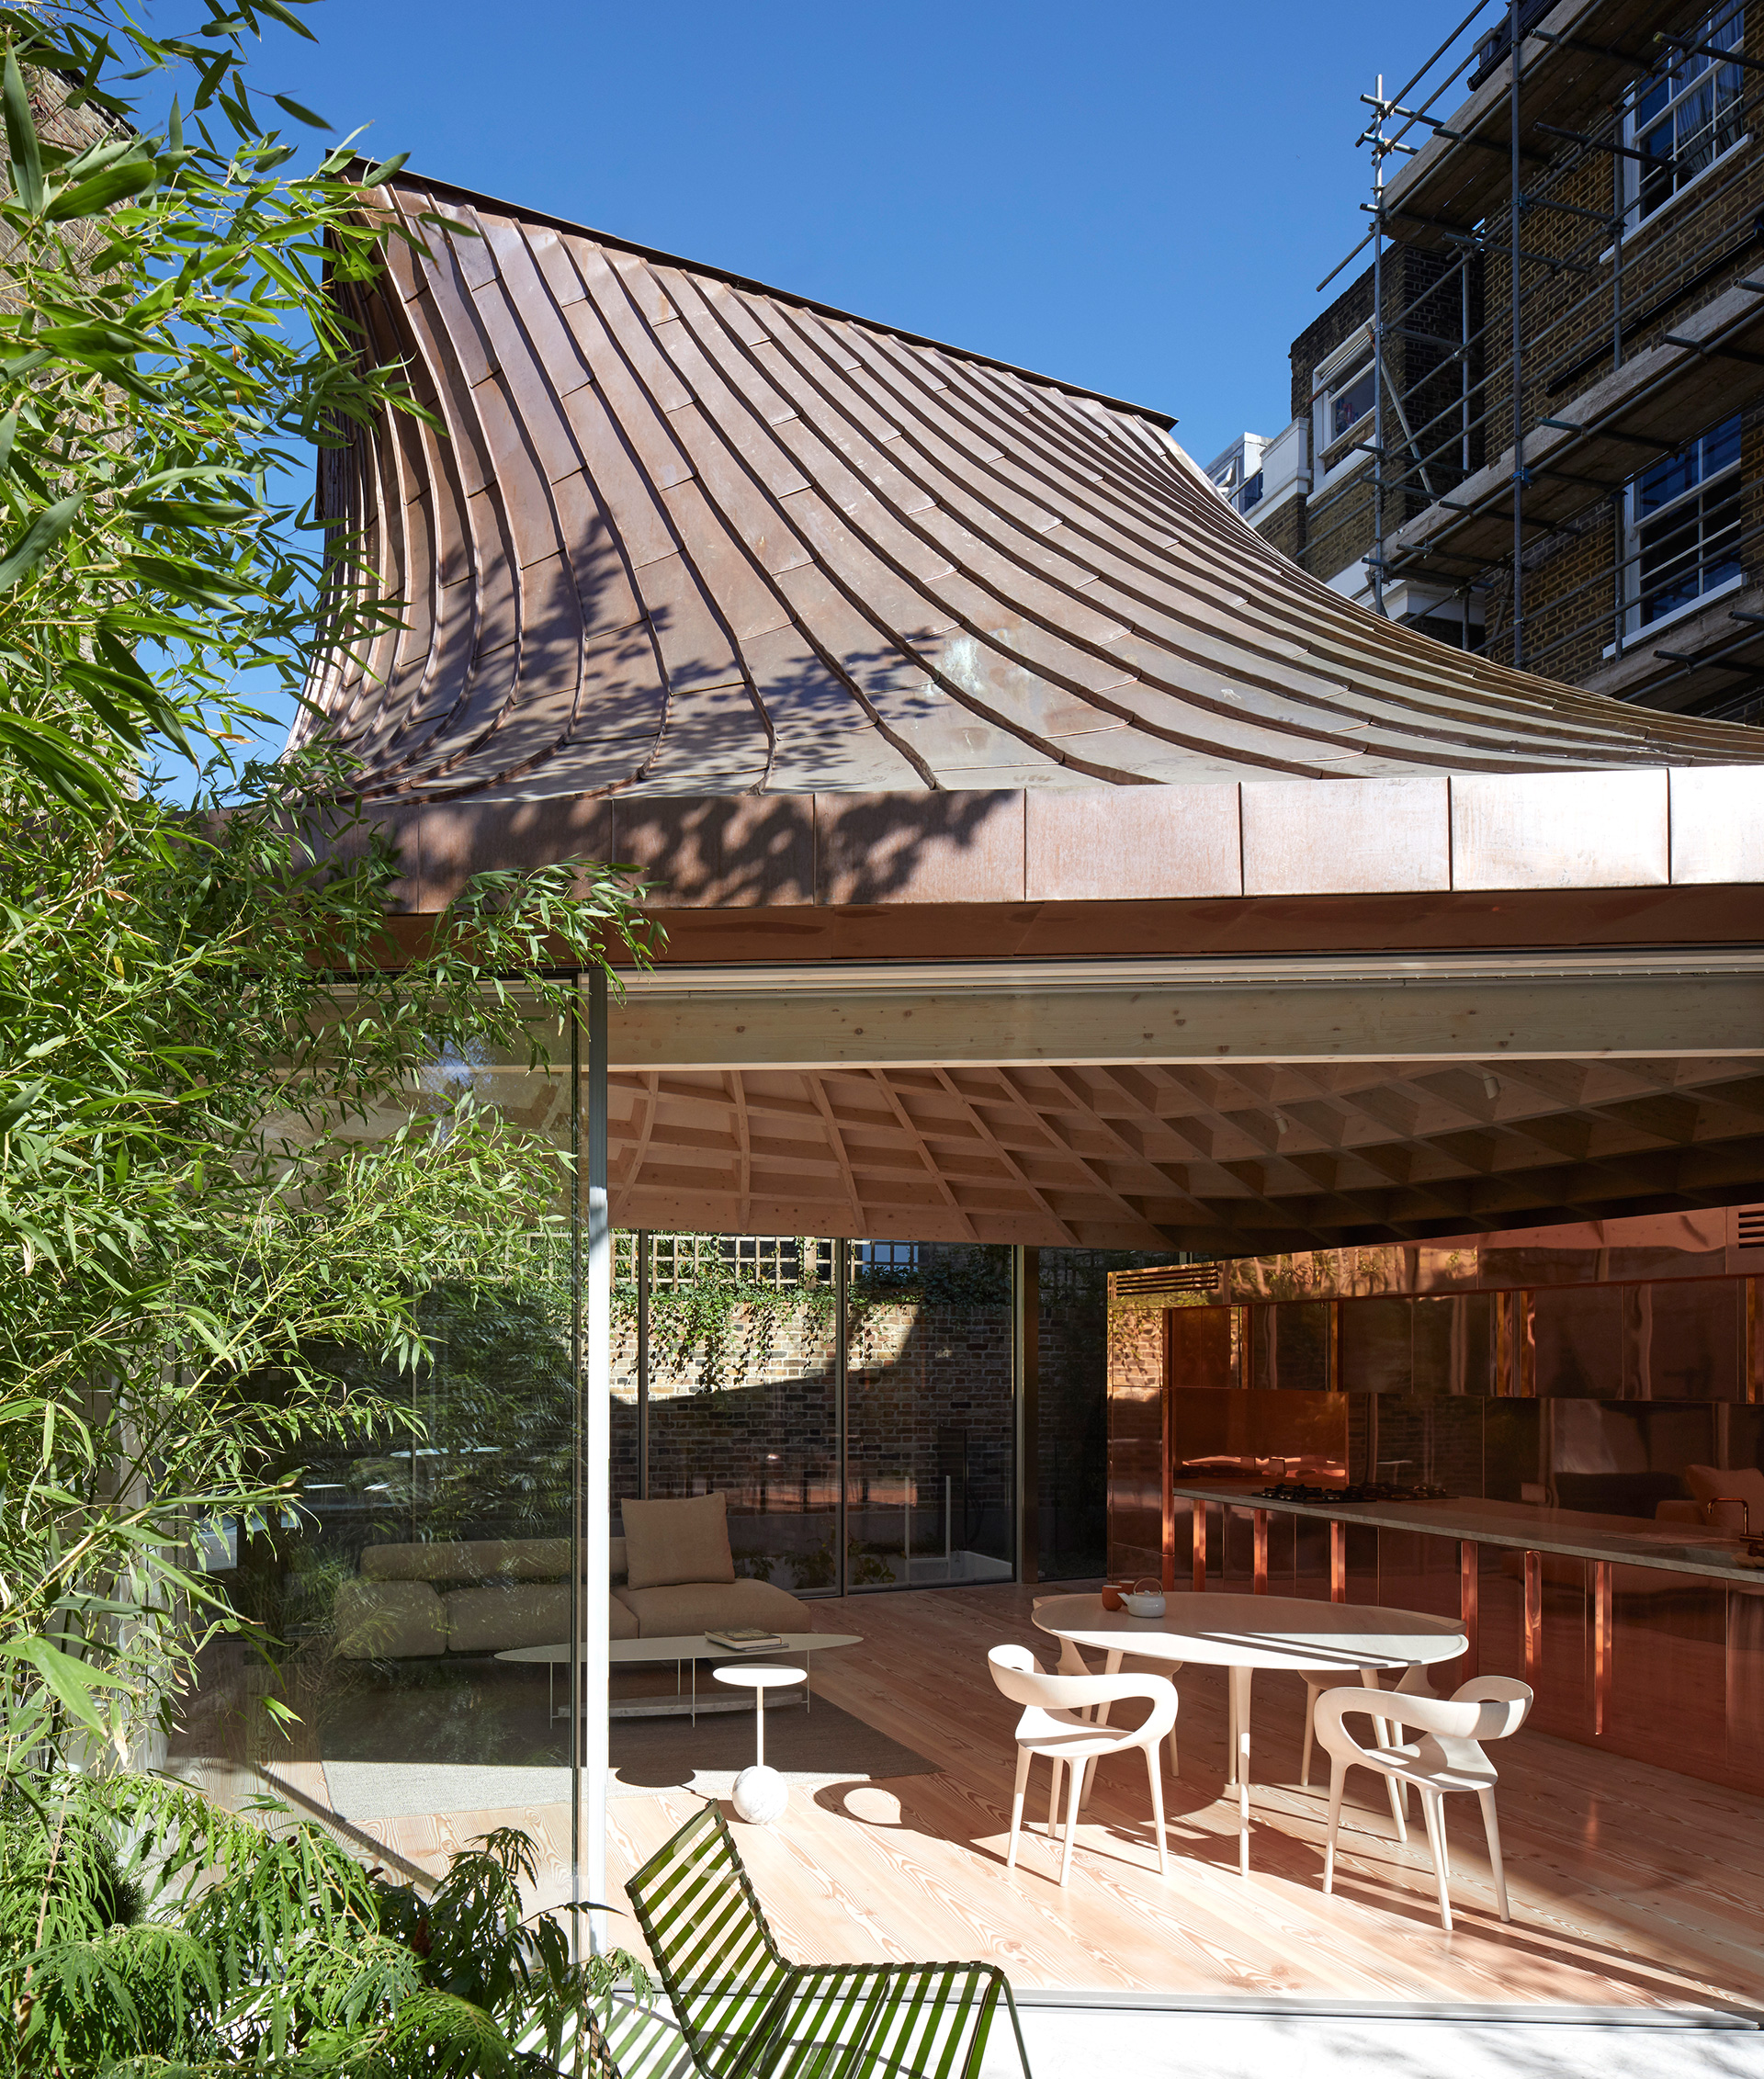 The entire house enmeshed with complex yet beautiful details comes together as a holistic entity | House in a Garden, London by Gianni Botsford Architects | STIRworld